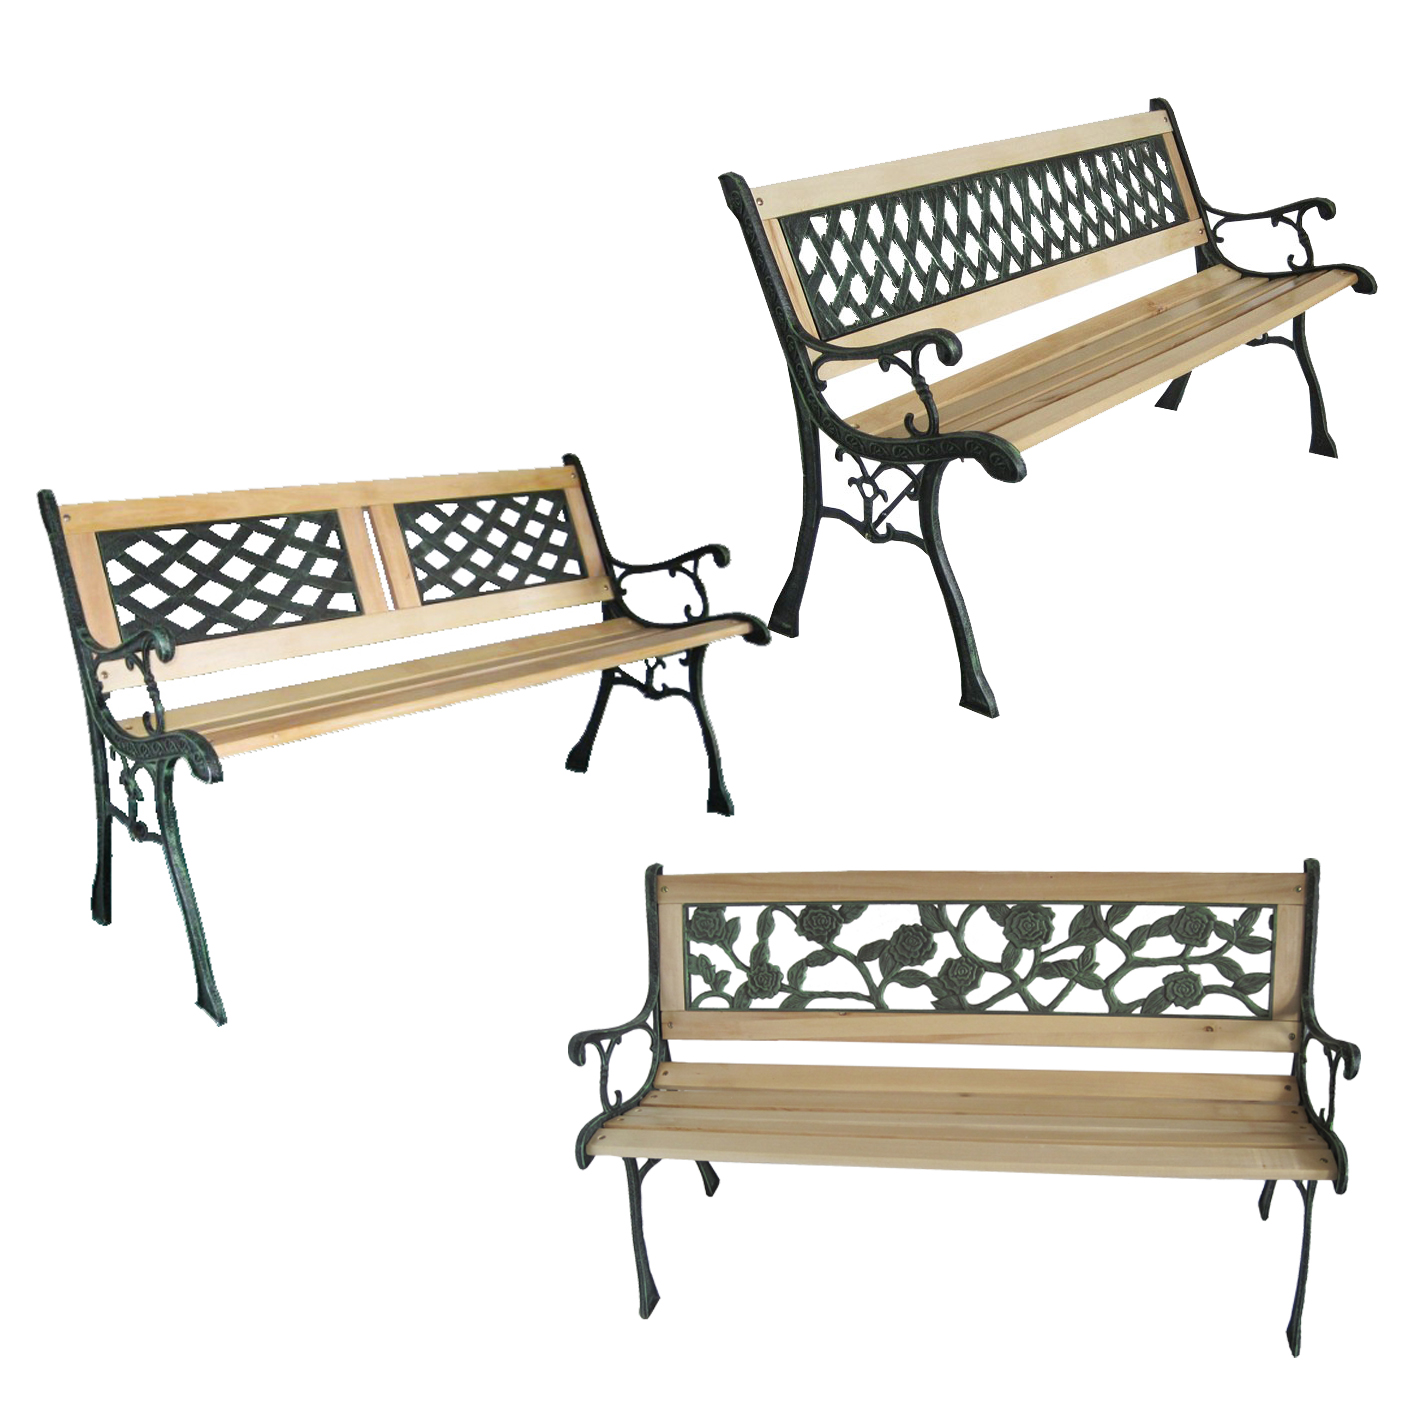 New 3 seater outdoor home wooden garden bench with cast Cast iron garden furniture